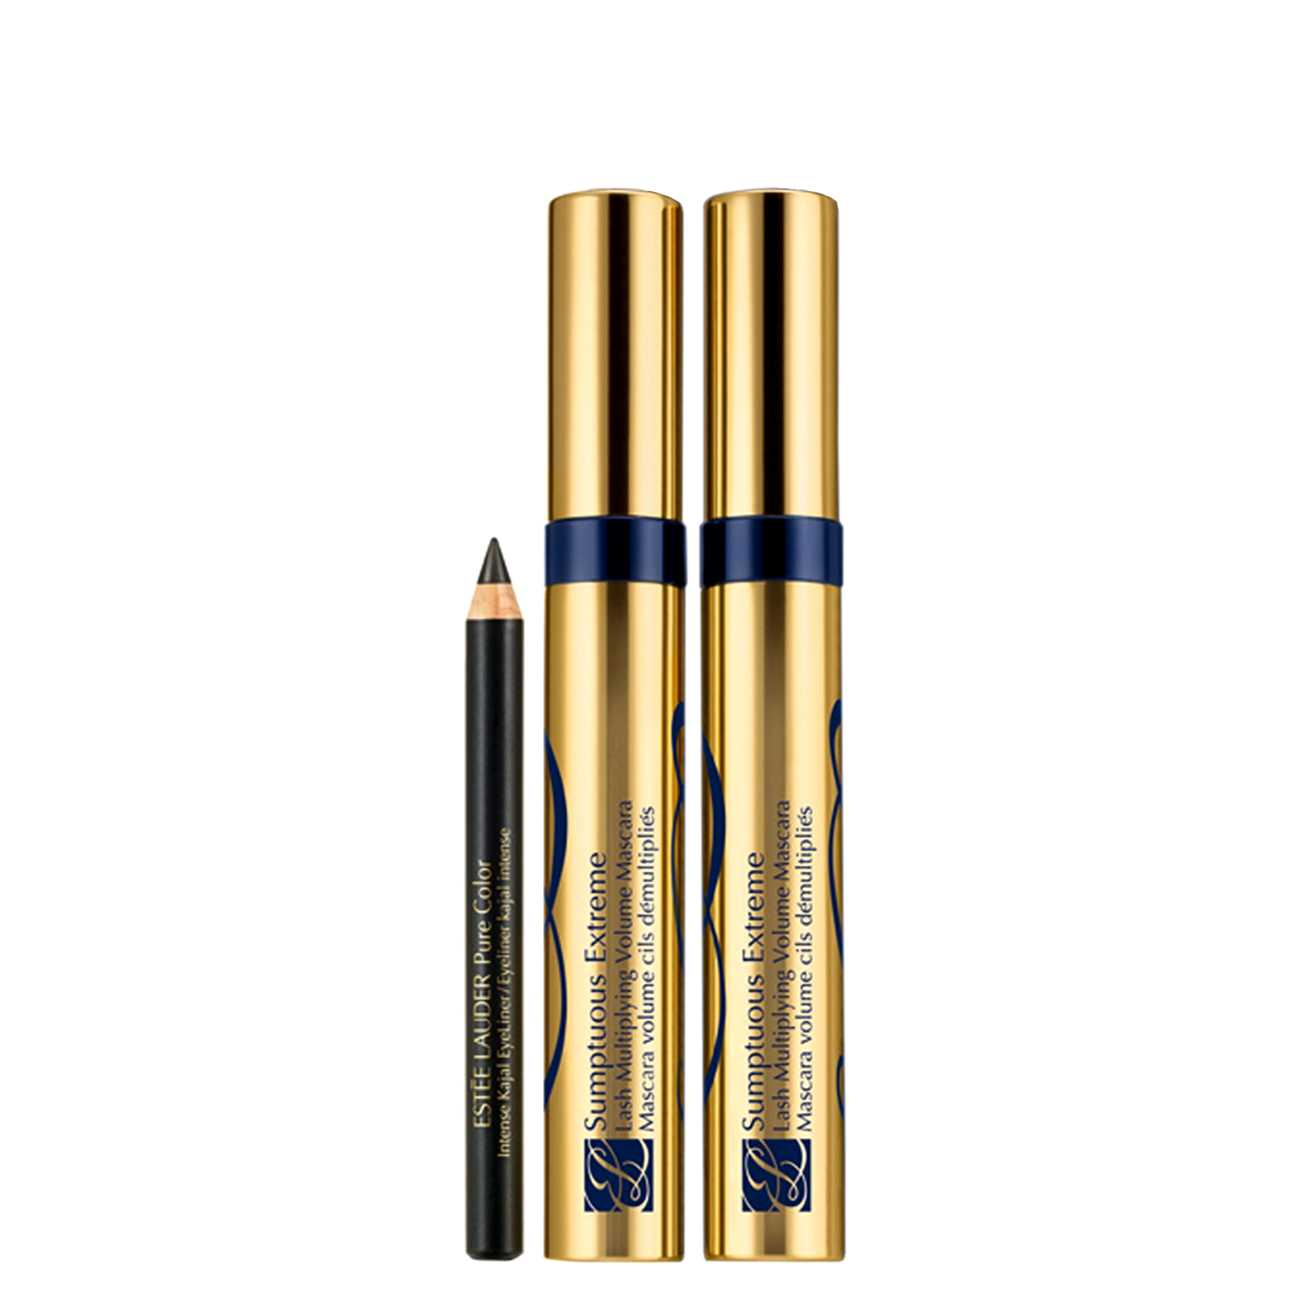 SUMPTUOUS EXTREME MASCARA SET 20 ML imagine produs